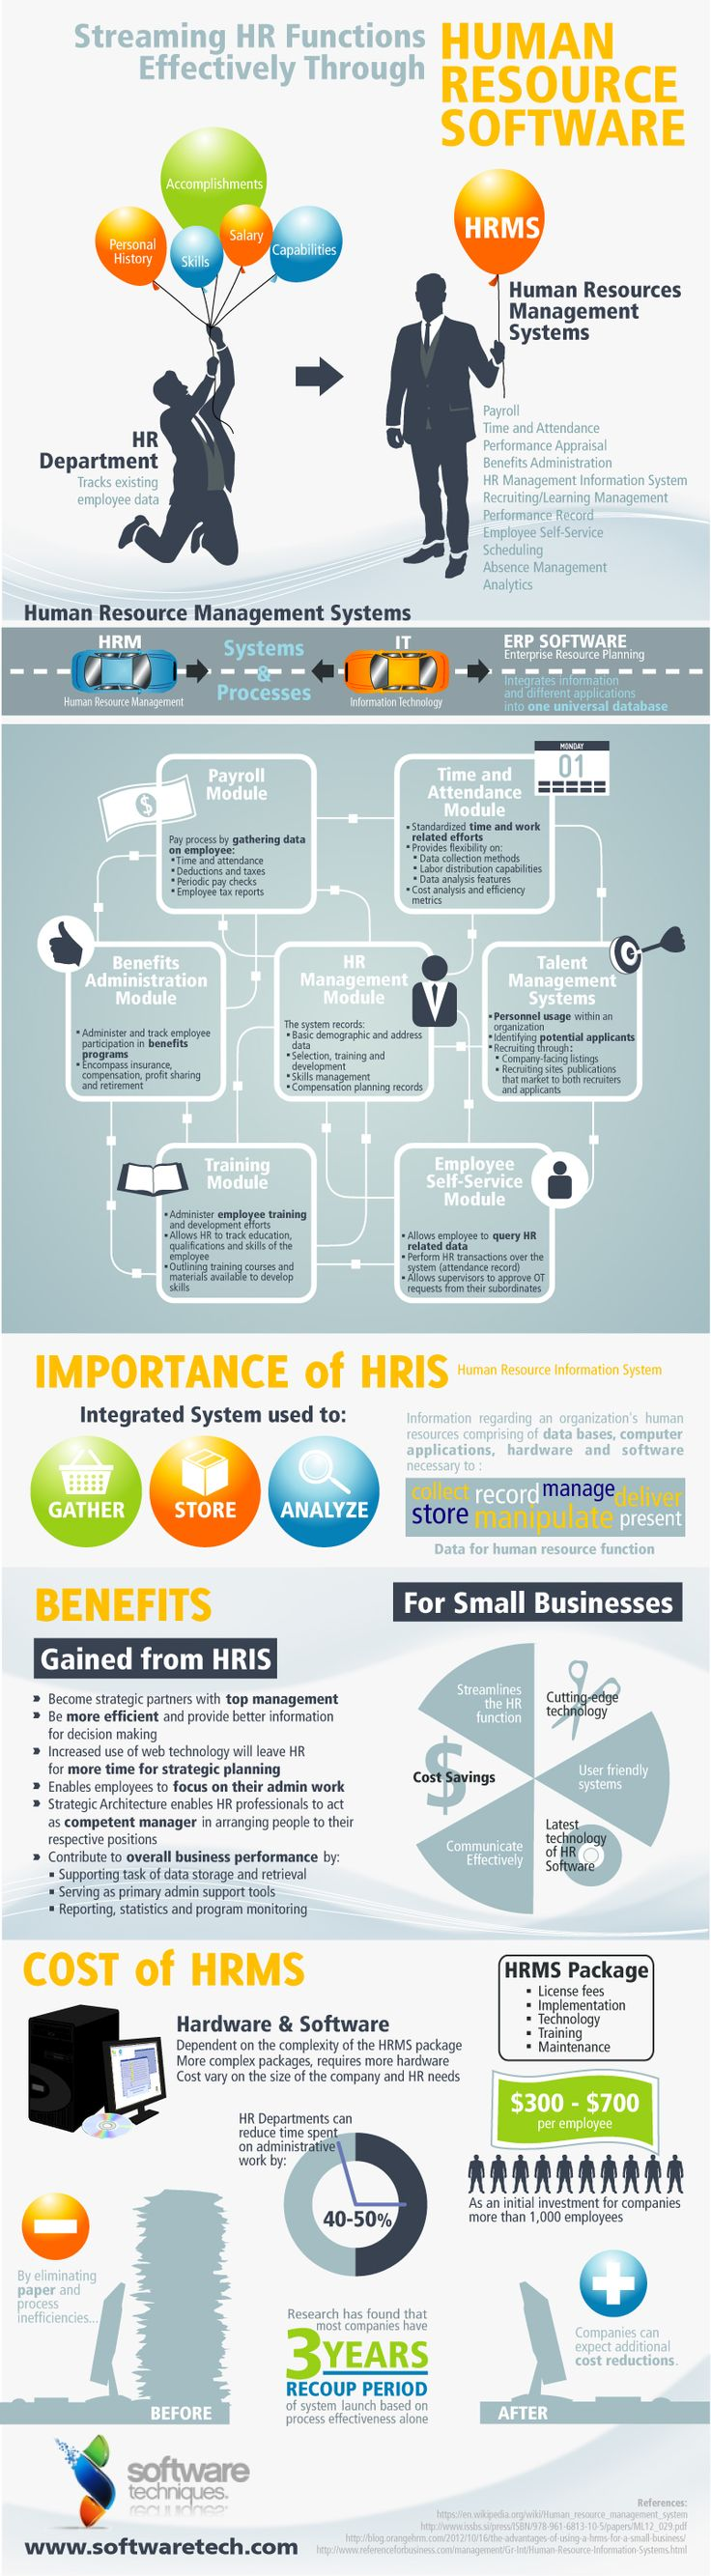 Management Streaming Hr Functions Effectively Through Human